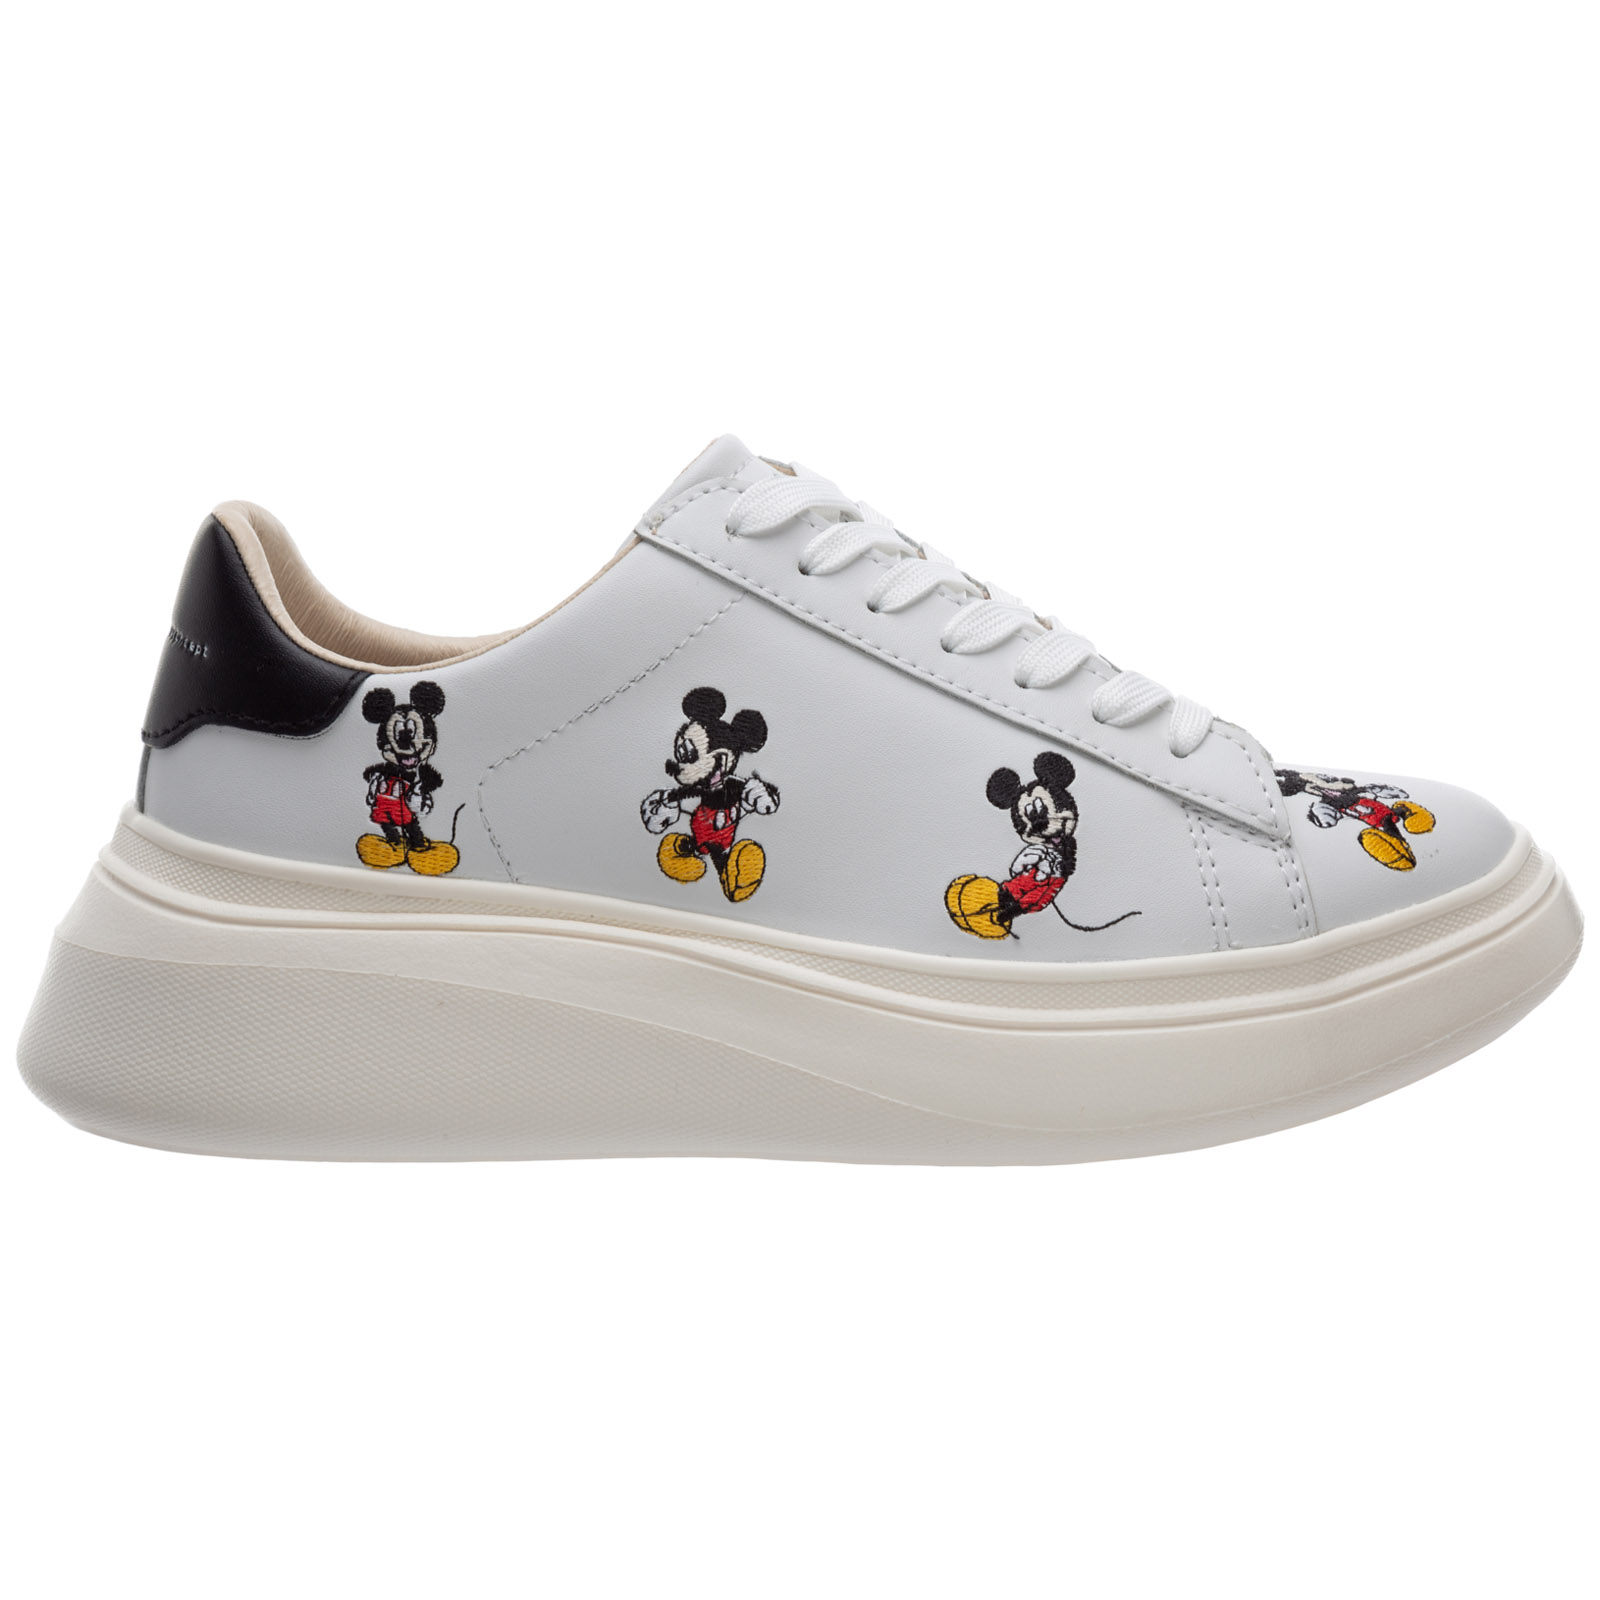 Moa Master Of Arts Leathers WOMEN'S SHOES LEATHER TRAINERS SNEAKERS DOUBLE GALLERY